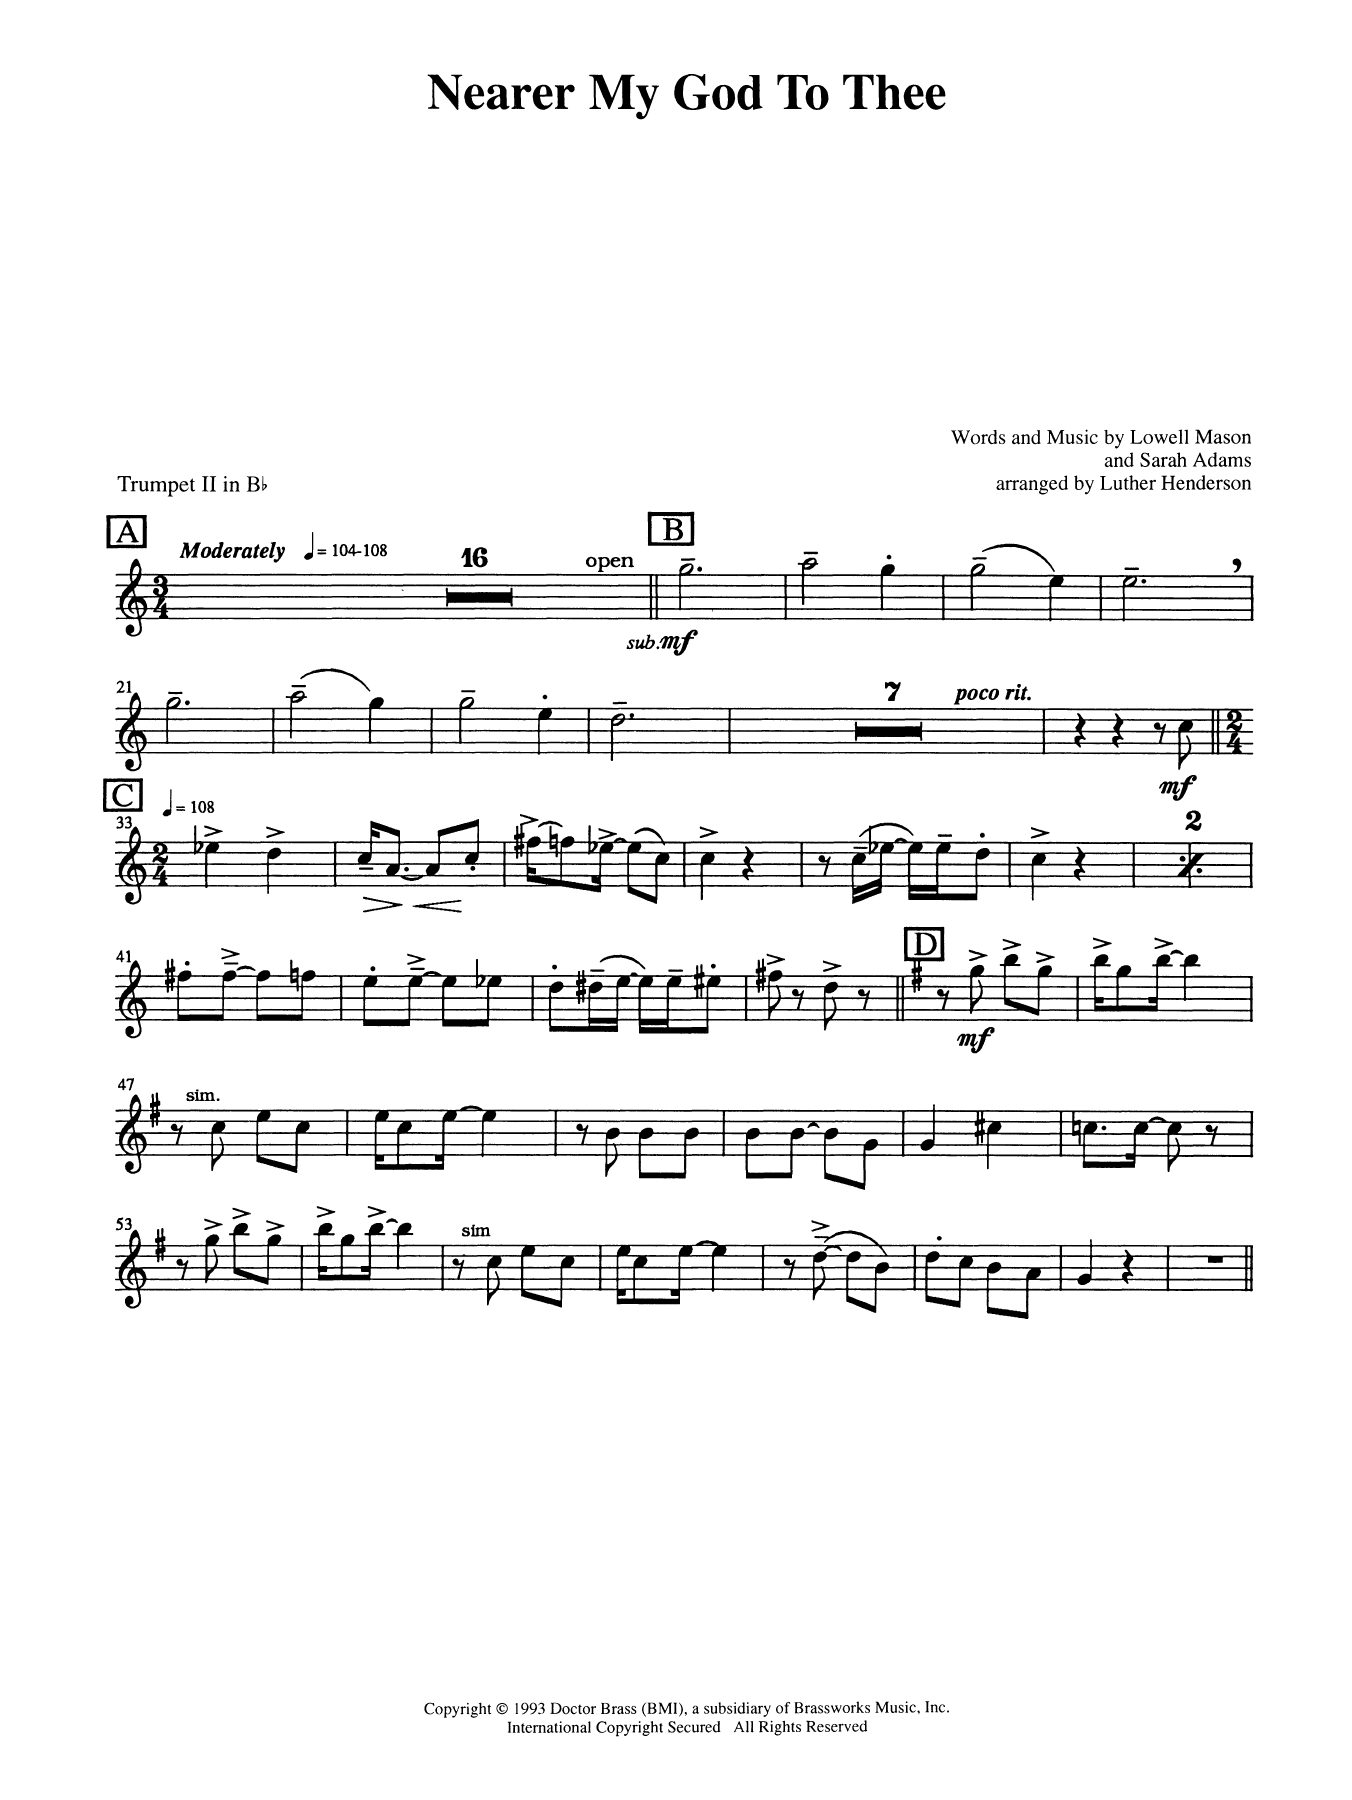 Nearer My God to Thee - Bb Trumpet 2 (Brass Quintet) Sheet Music